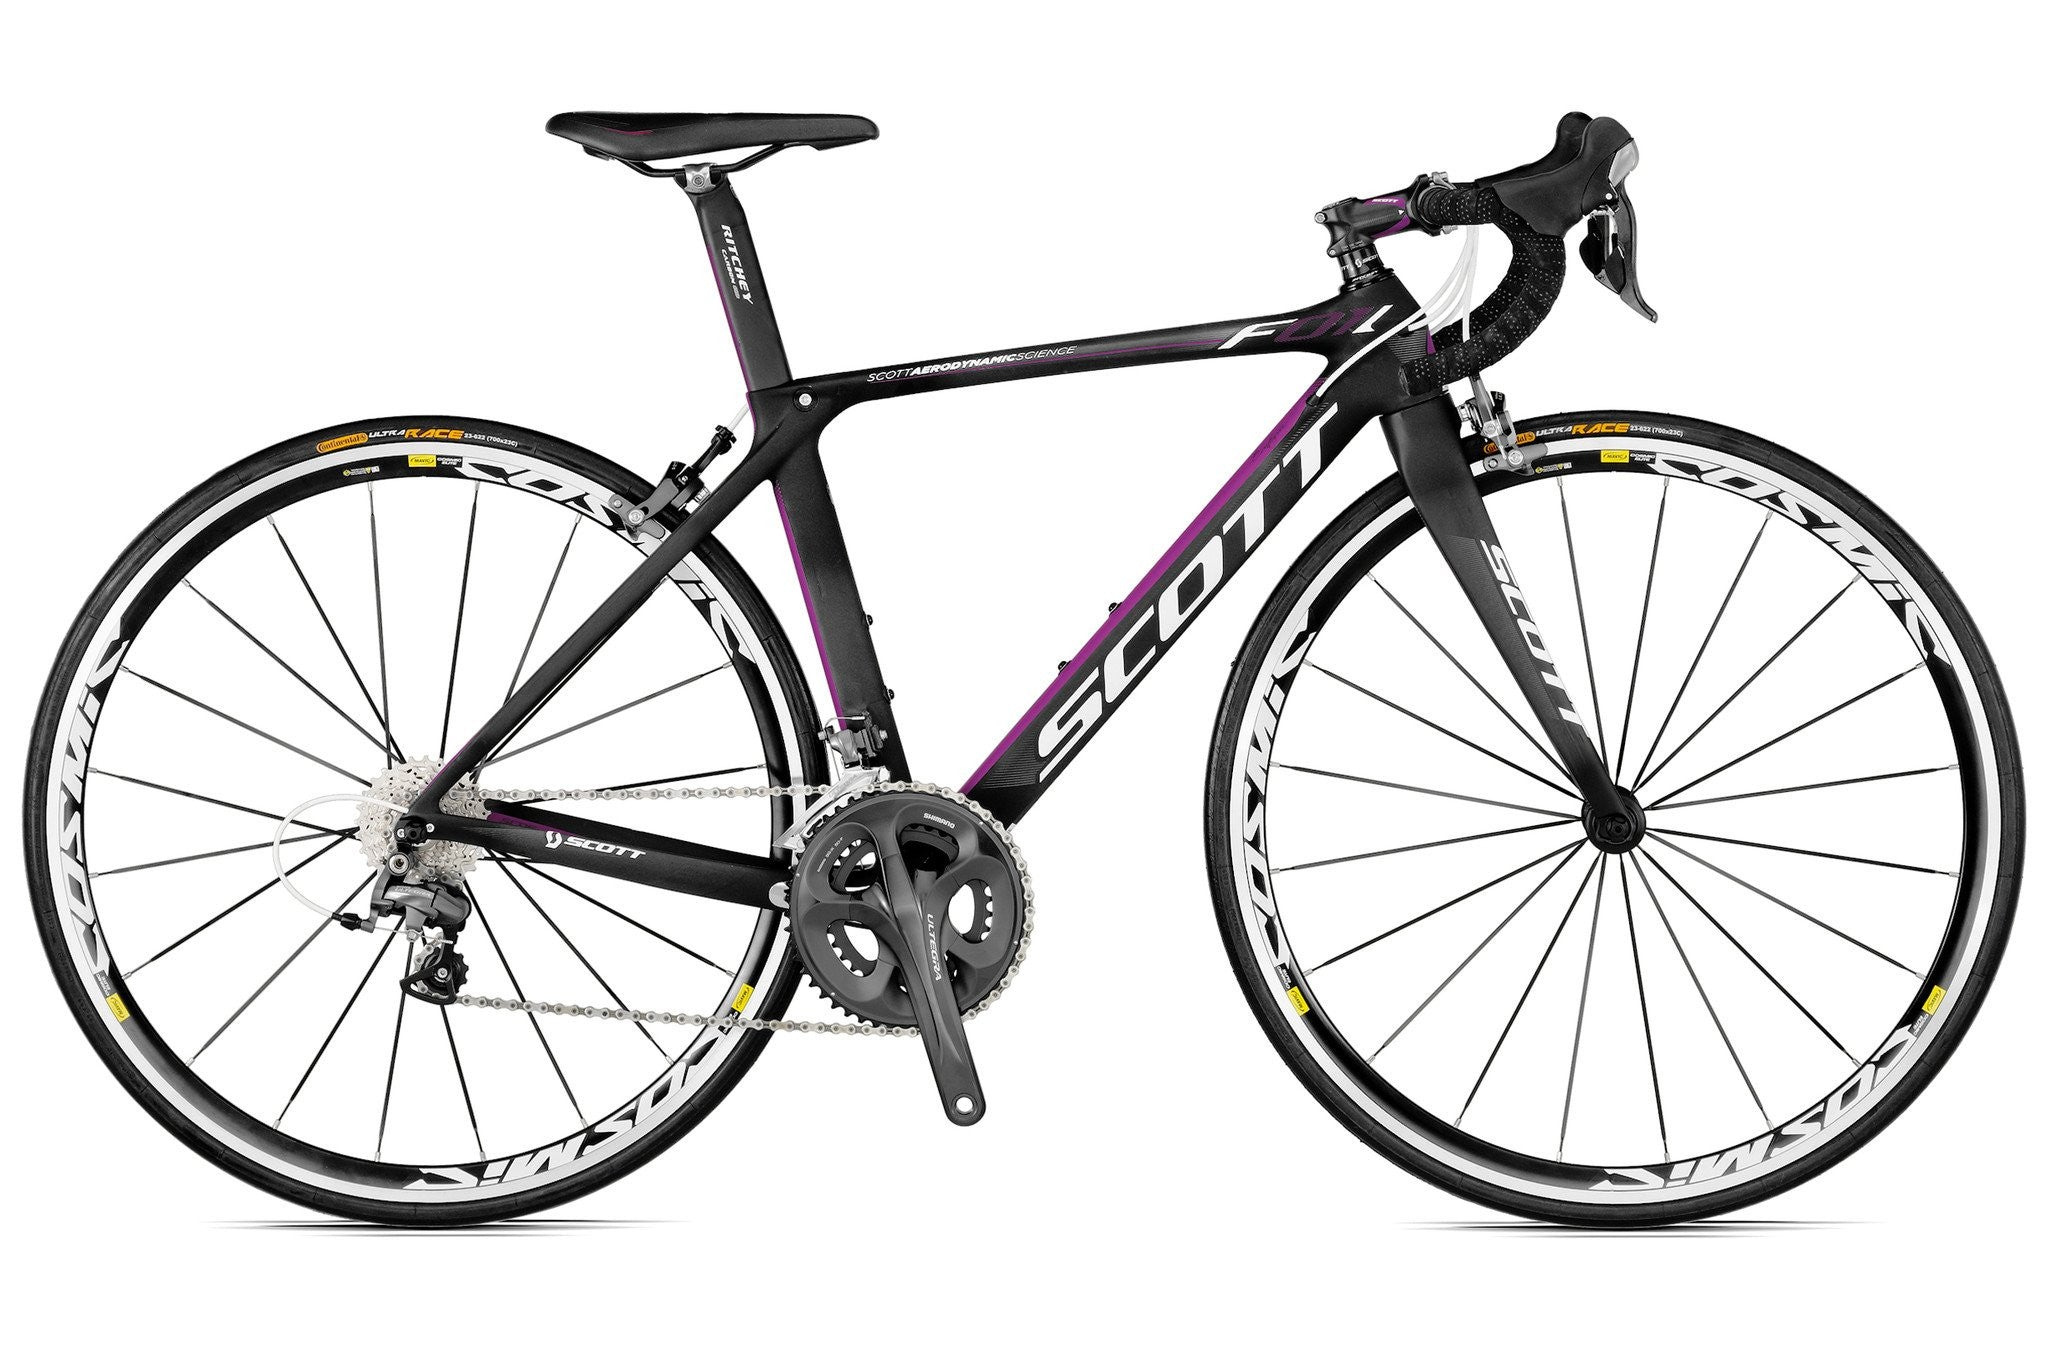 2012 Scott Foil Contessa Road Bike